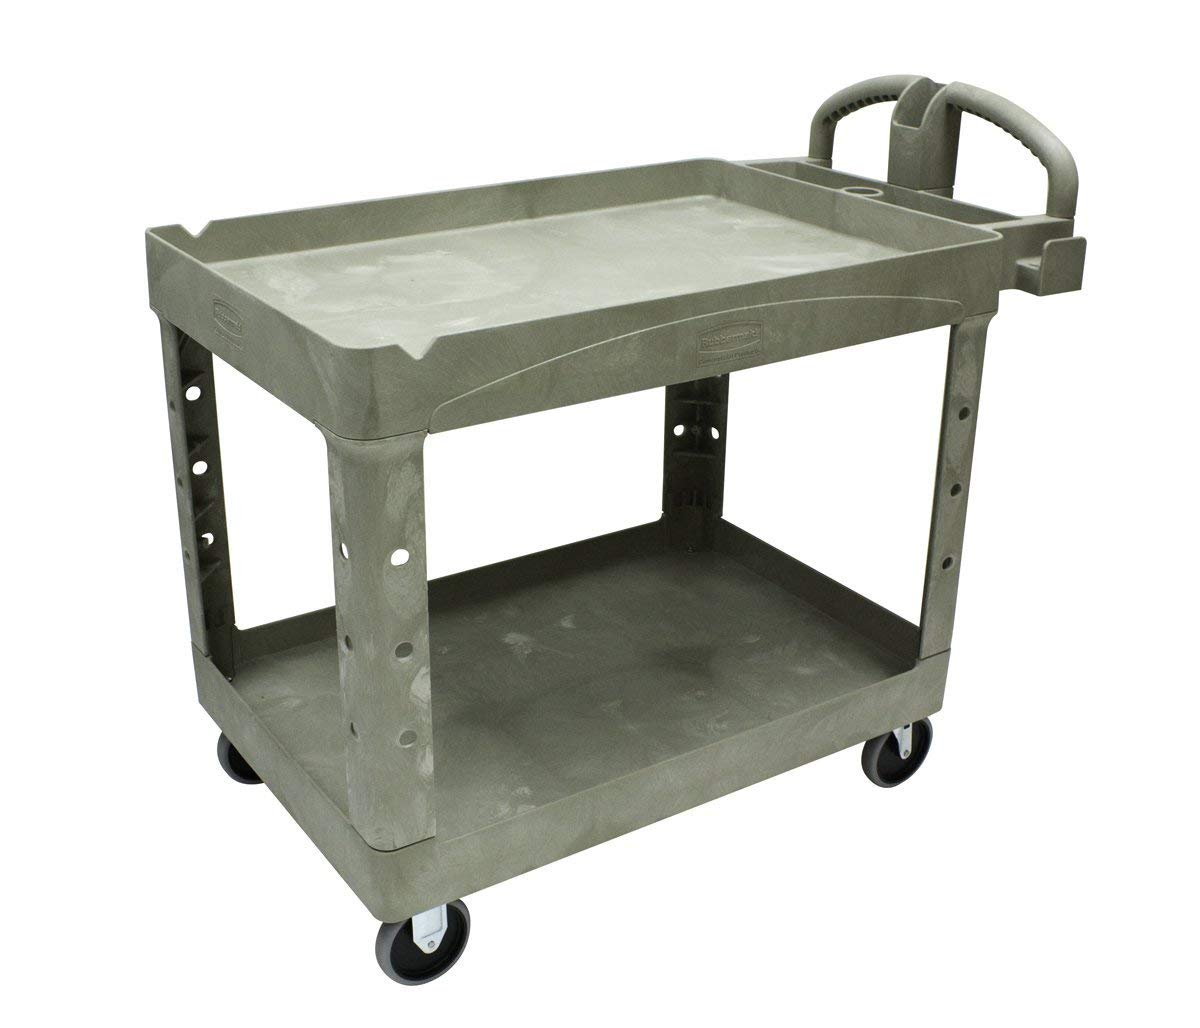 """Rubbermaid Commercial Polypropylene Service Cart with Lipped Shelf, 2 Shelves, Beige, 2000 lbs Load Capacity, 33-1/4"""" Height, 45-1/4"""" Length x 25-7/8"""" Width"""